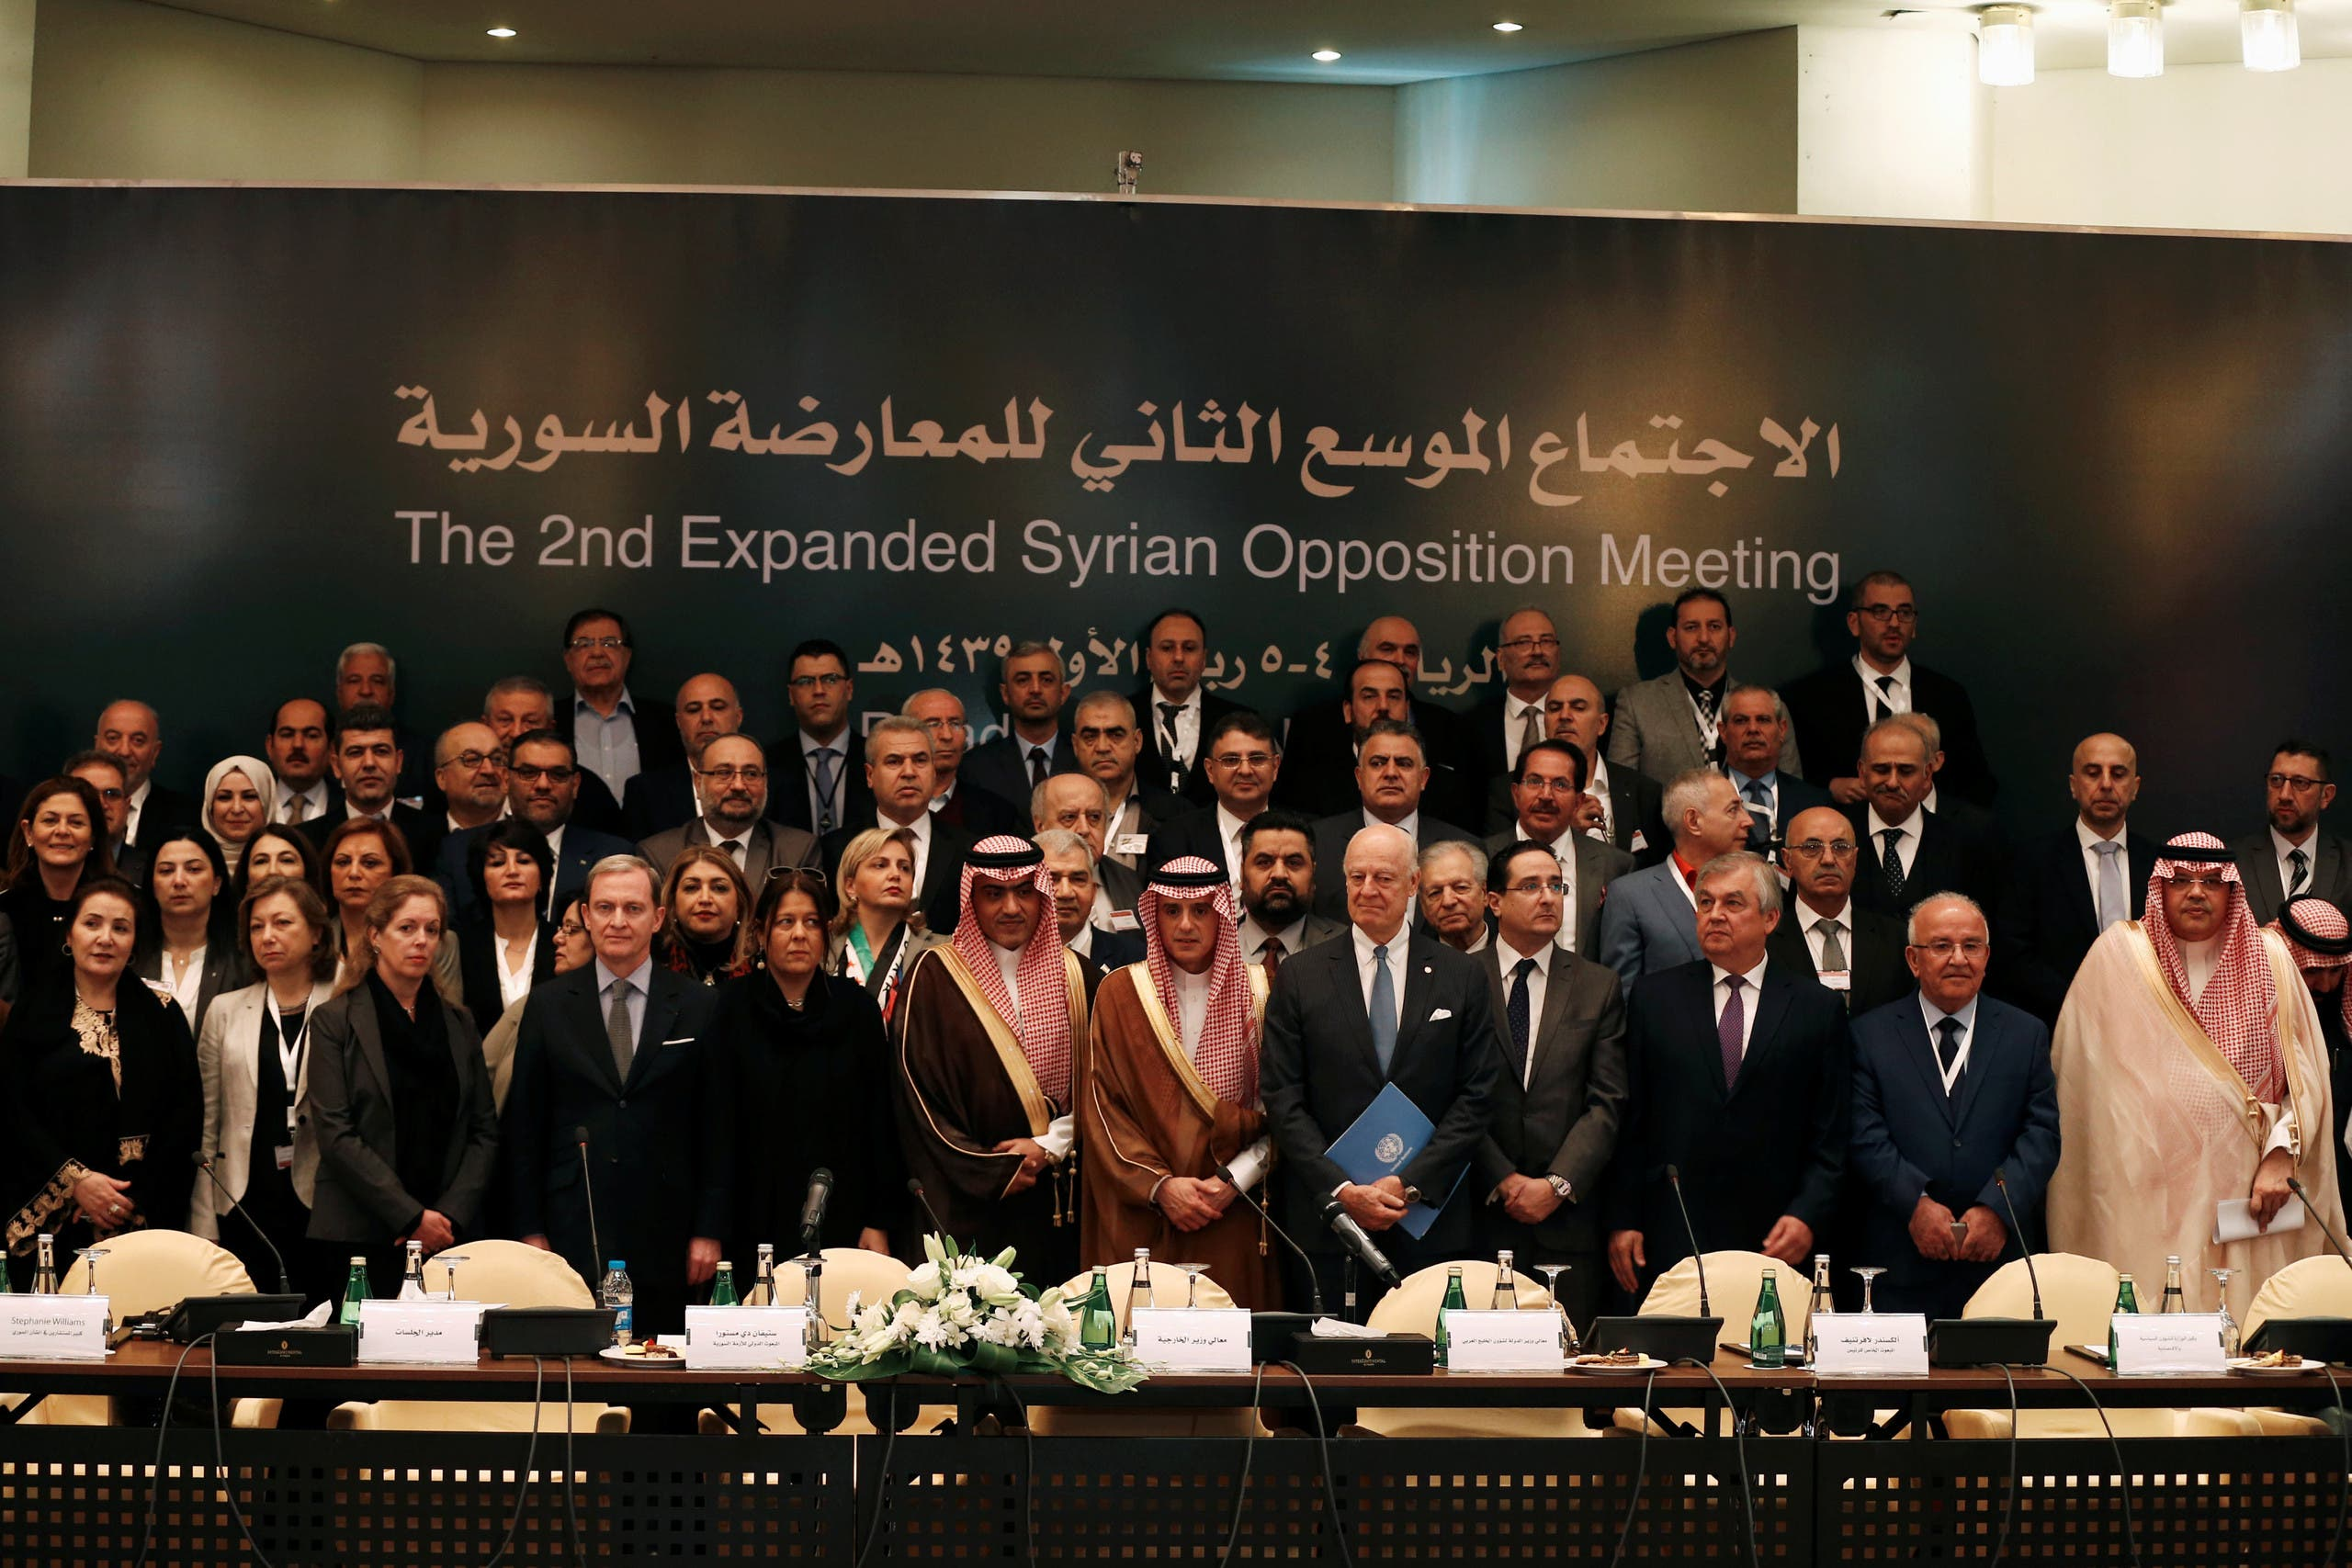 Saudi Foreign Minister Adel al-Jubeir poses for a group photo during a Syrian opposition meeting in Riyadh, Saudi Arabia, November 22, 2017. REUTERS/Faisal Al Nasser